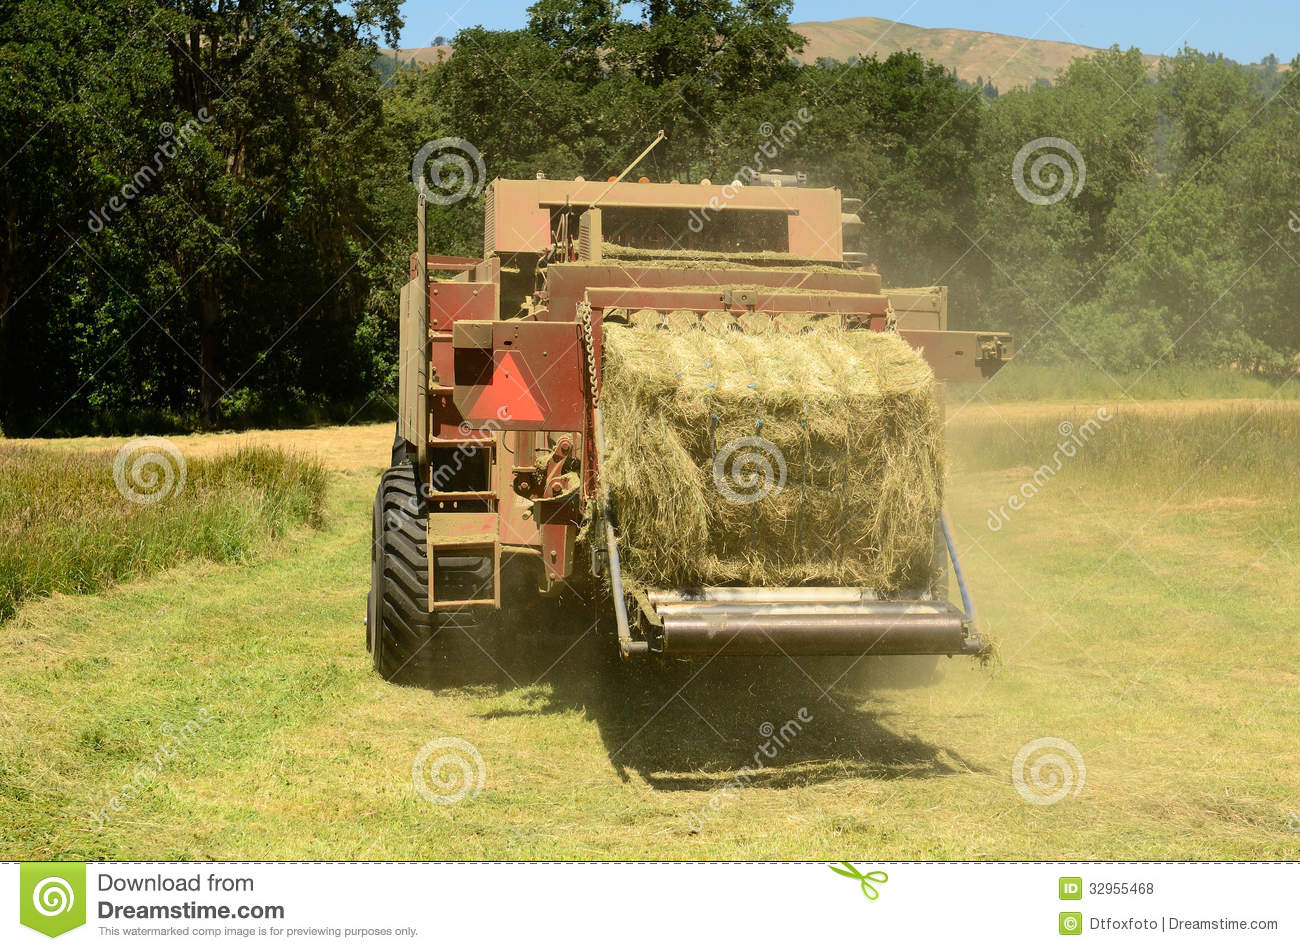 how to cut hay without a tractor